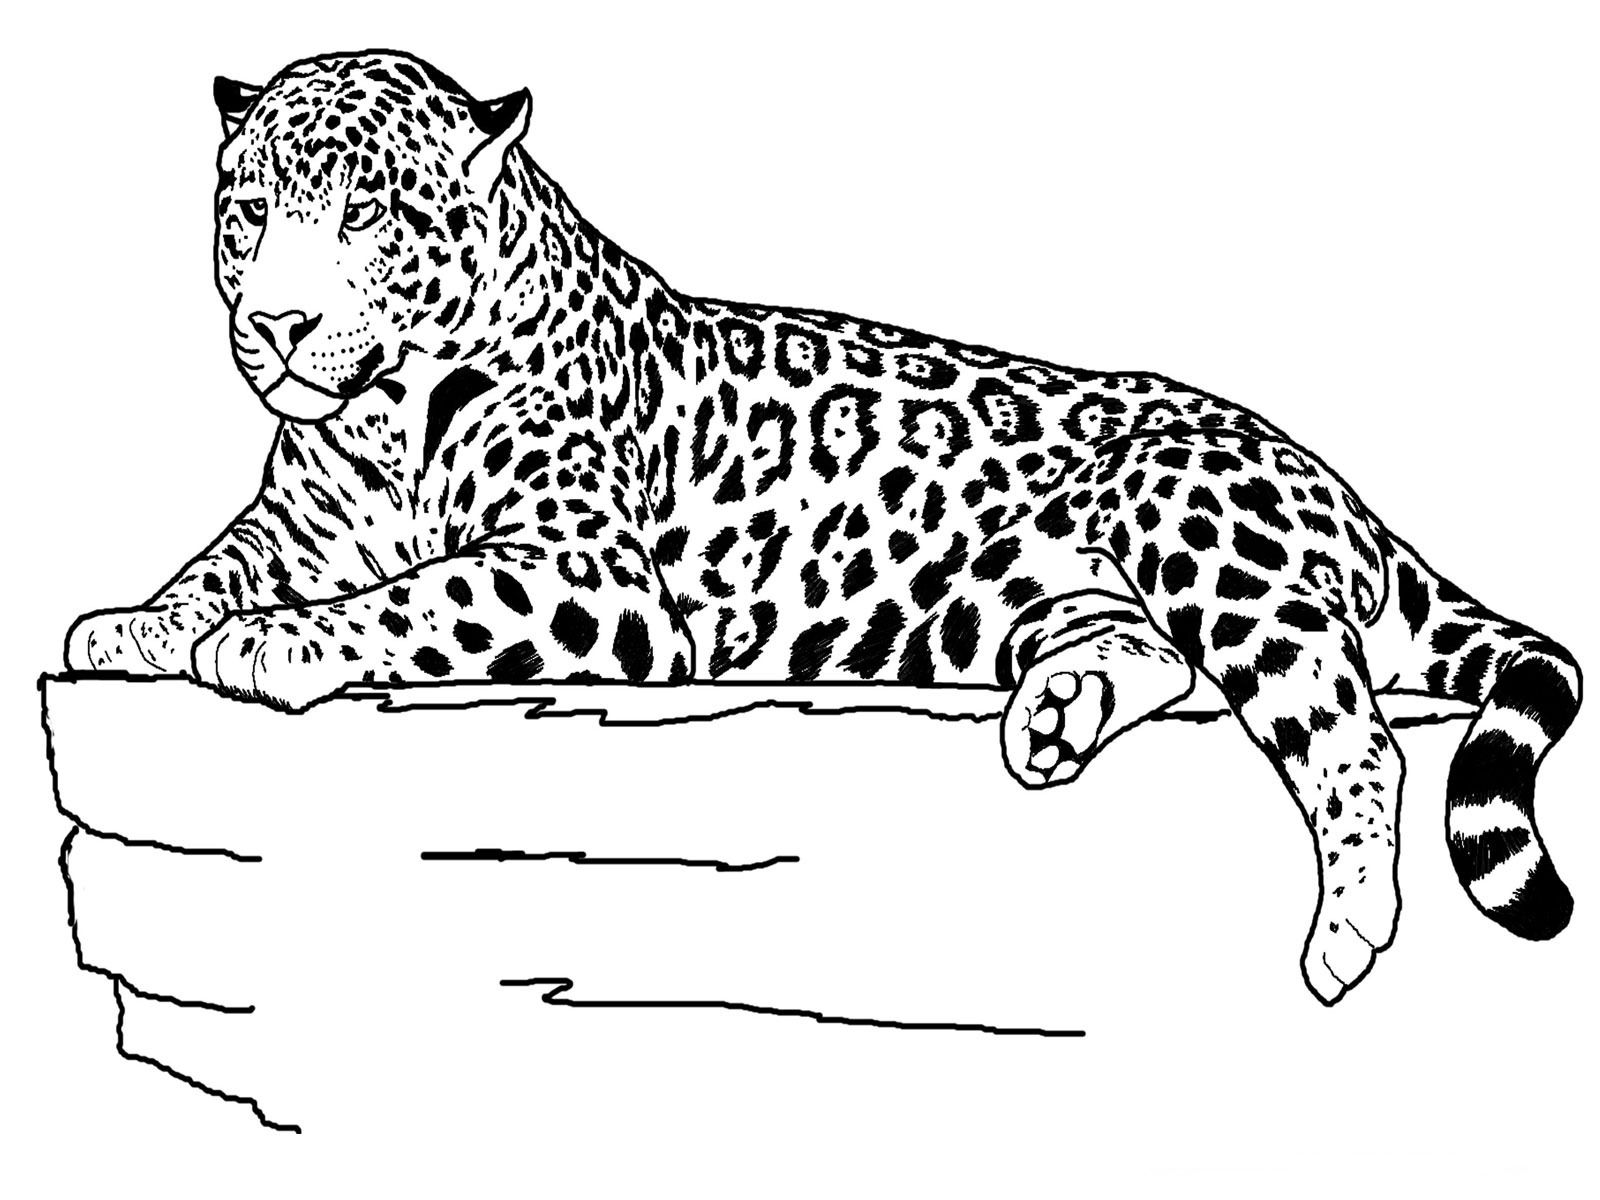 Jungle book coloring pages online - Get The Latest Free Realistic Animals Coloring Pages Images Favorite Coloring Pages To Print Online